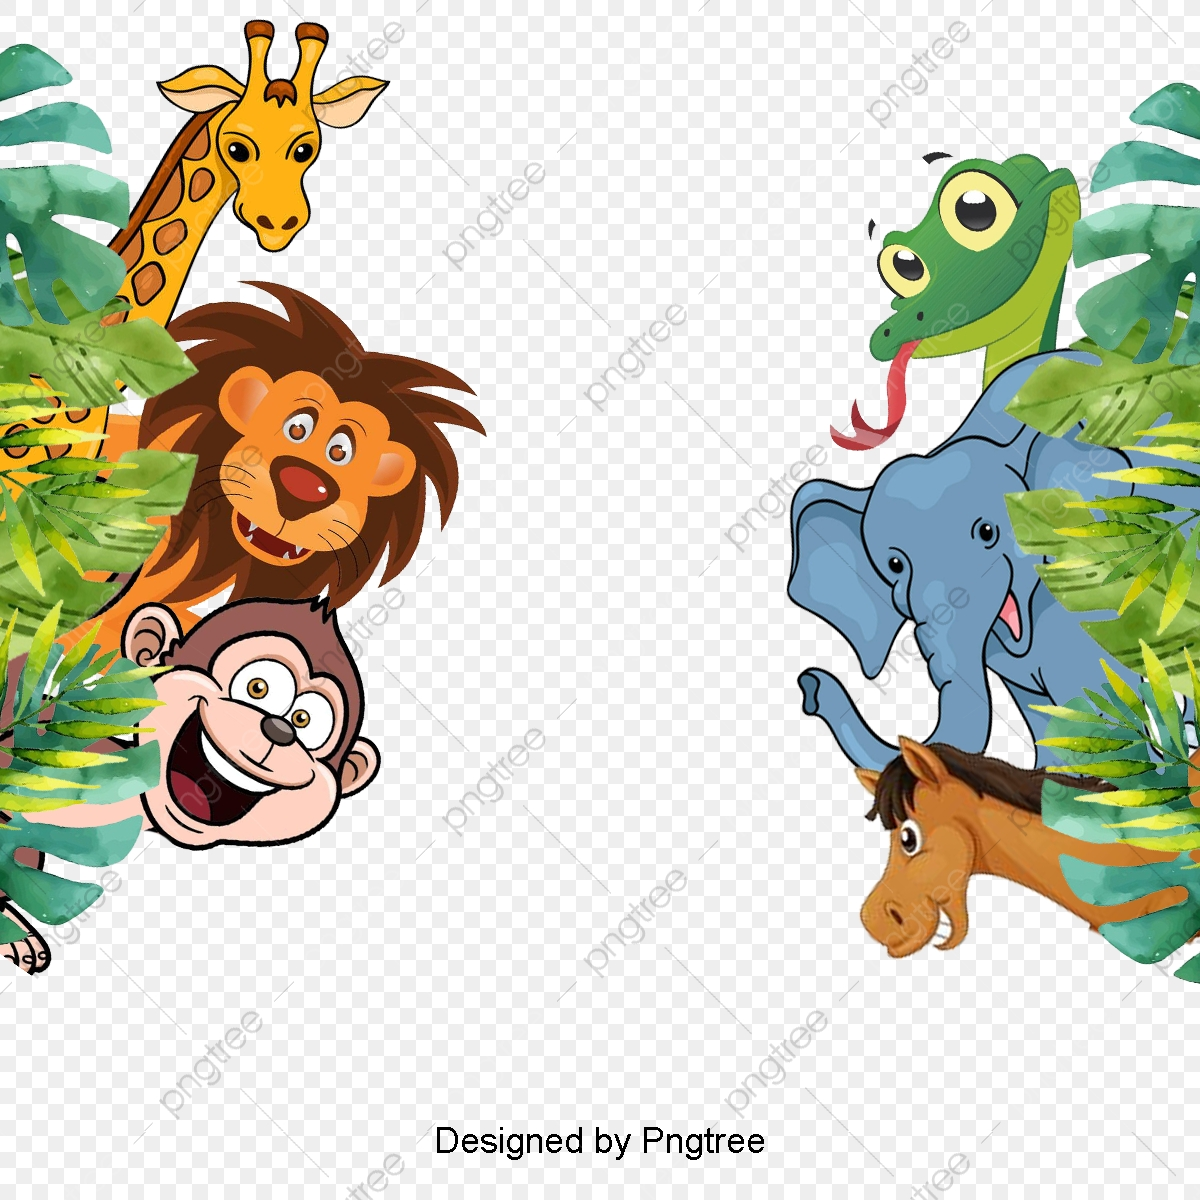 Jungle Animals Clipart Png Images Vector And Psd Files Free Download On Pngtree